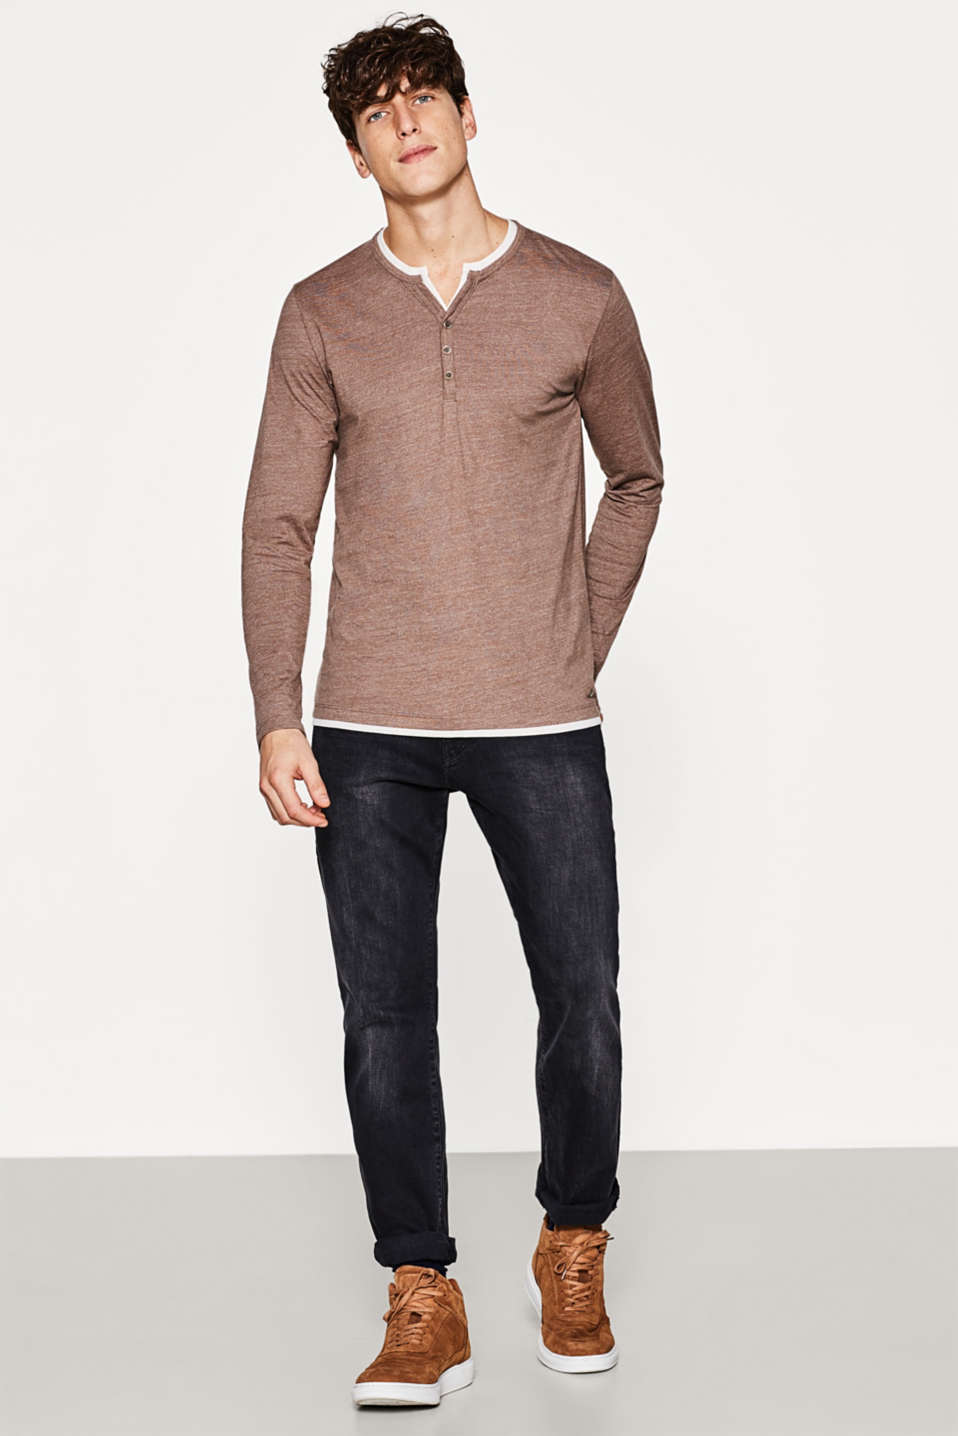 Esprit - Long sleeve jersey top with a layered effect